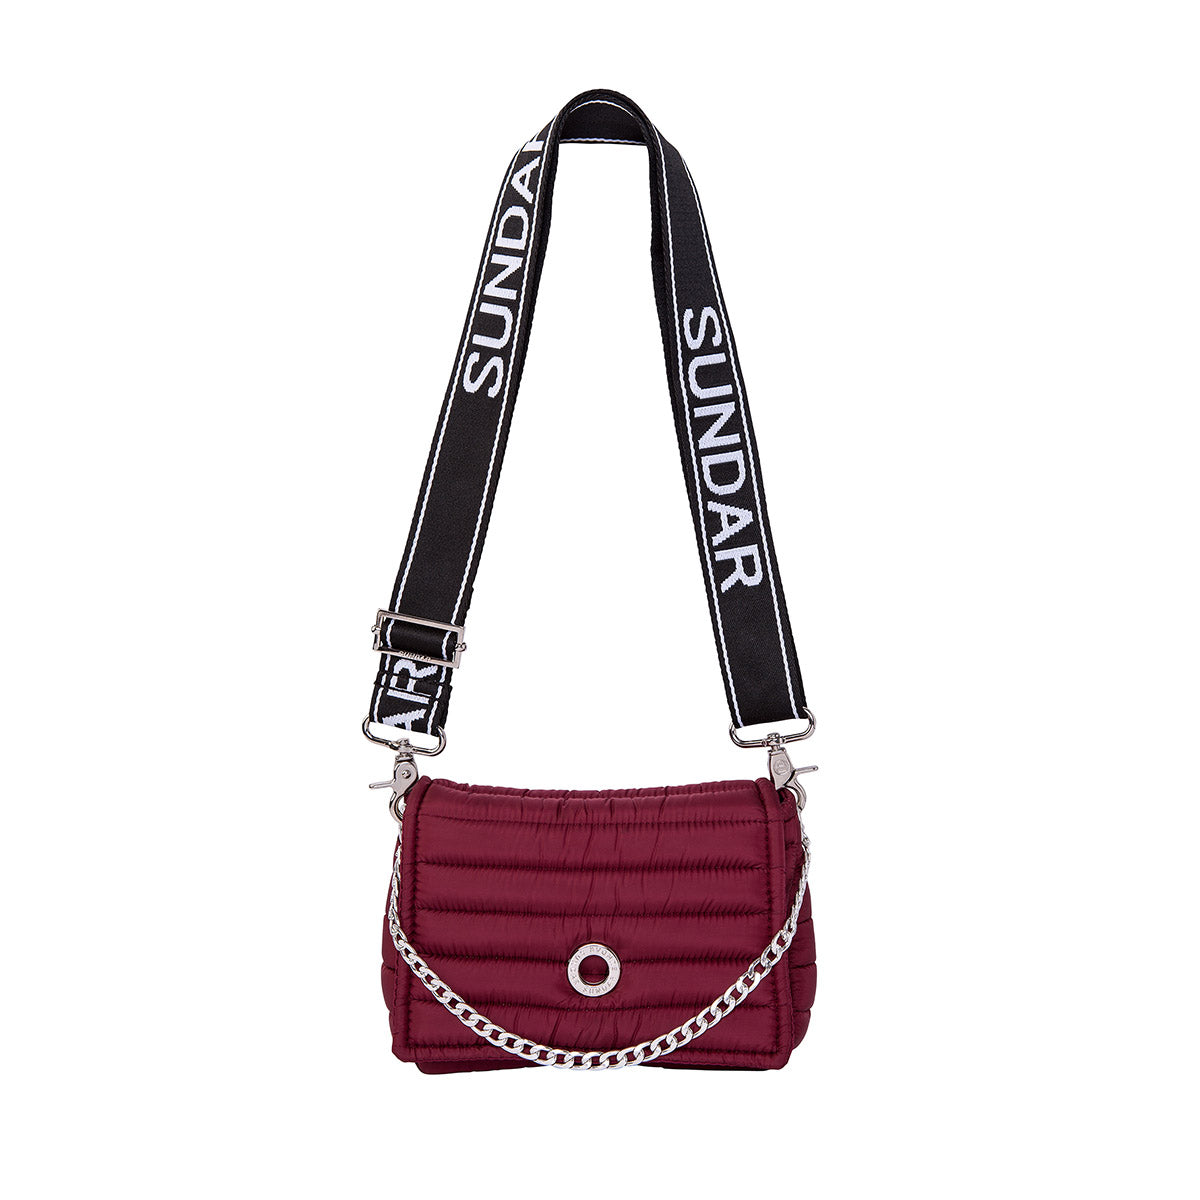 Andrea Cherry with two Straps (Chain Strap/ Black and White Adjustable Strap)